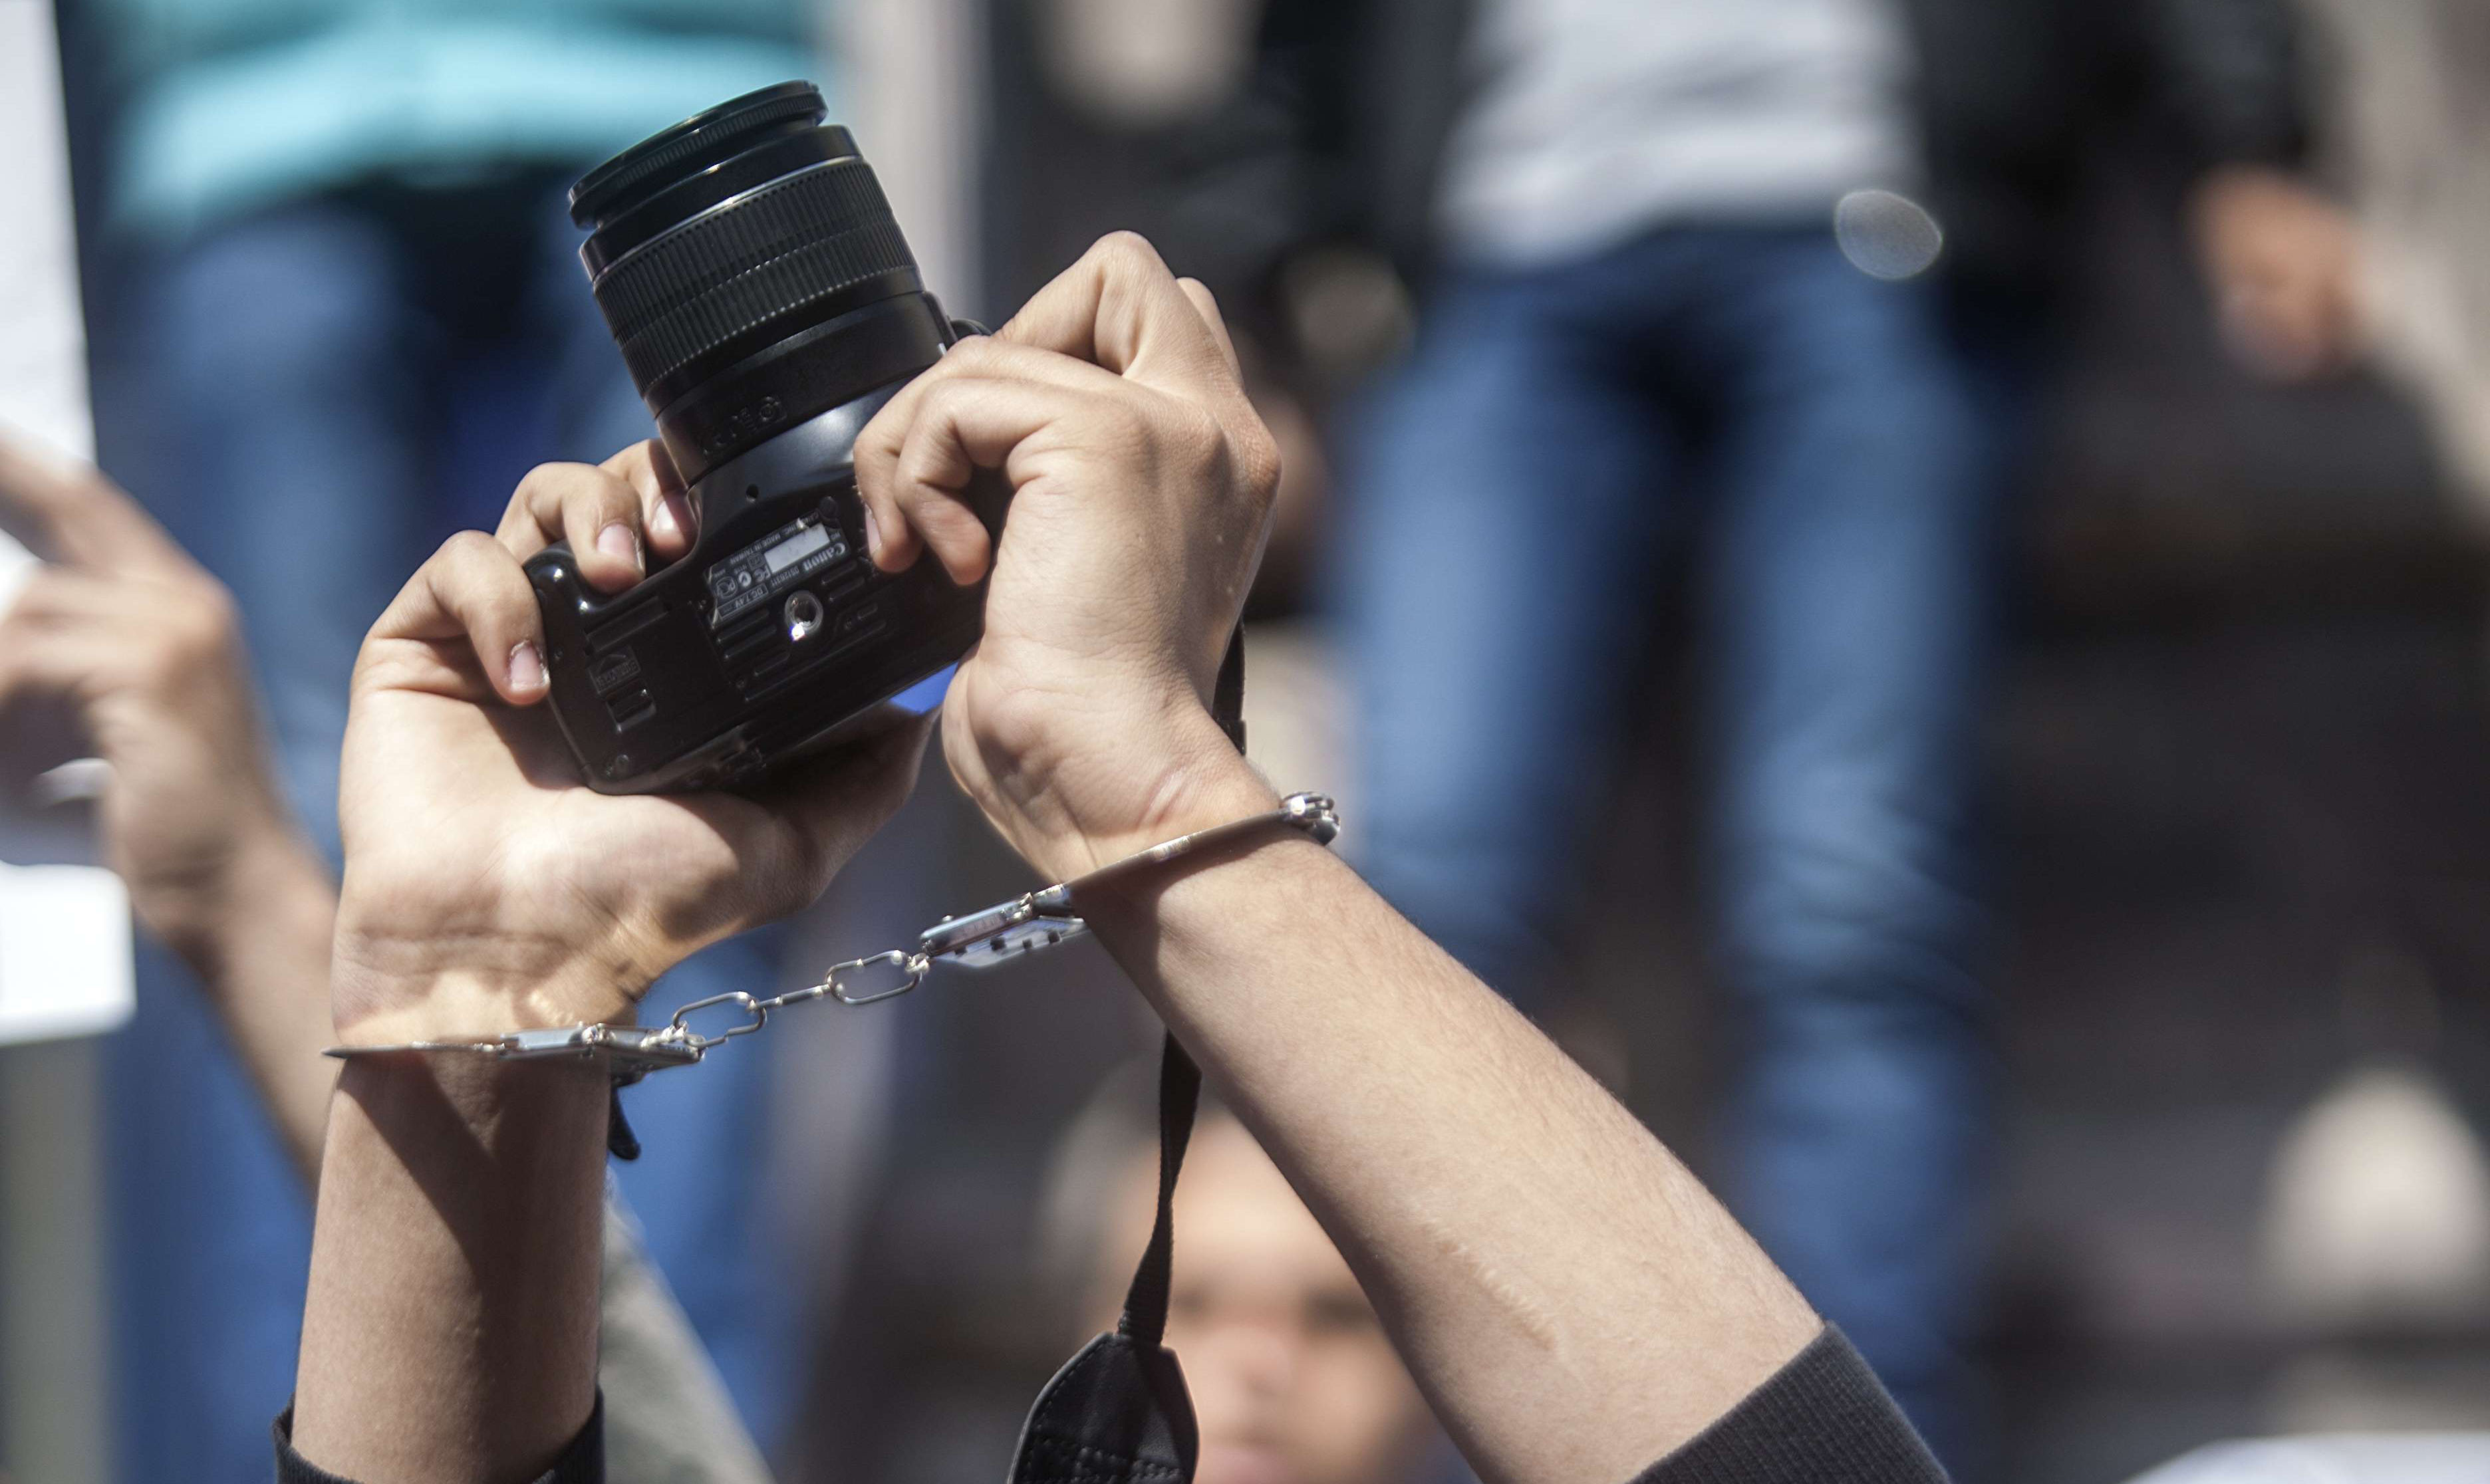 Practicing journalism in Egypt is 'risky business,'